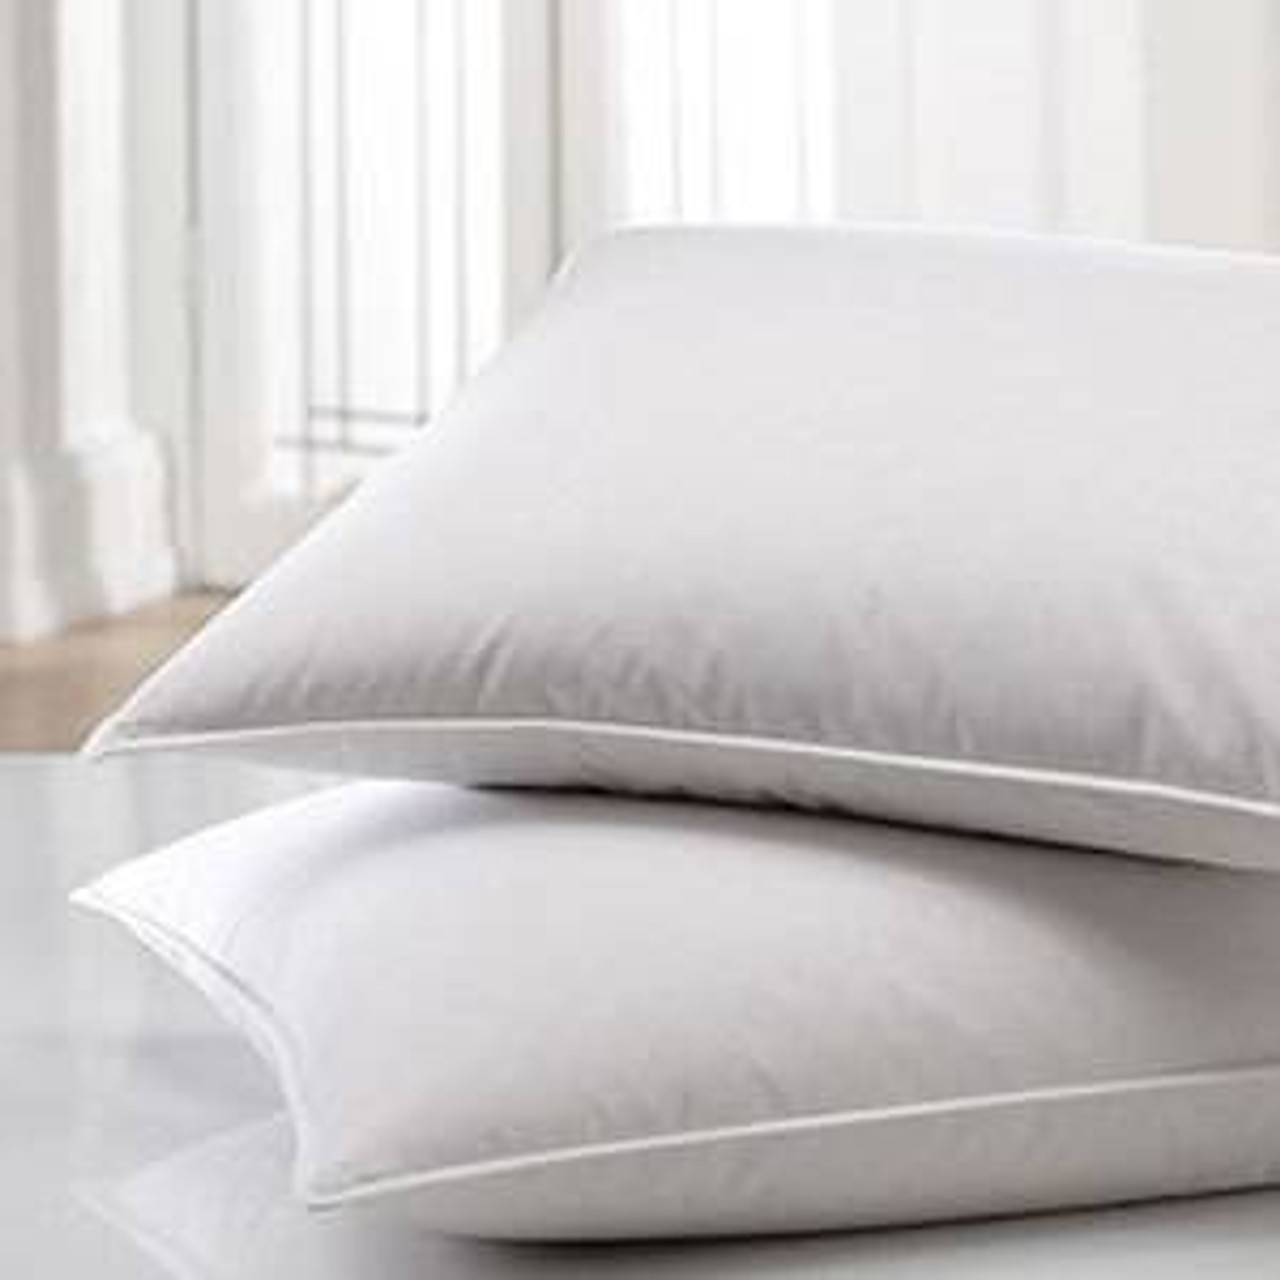 DownLite Bedding DownLite Pillows or Traditionalor 5-95 Duck Down and Feather